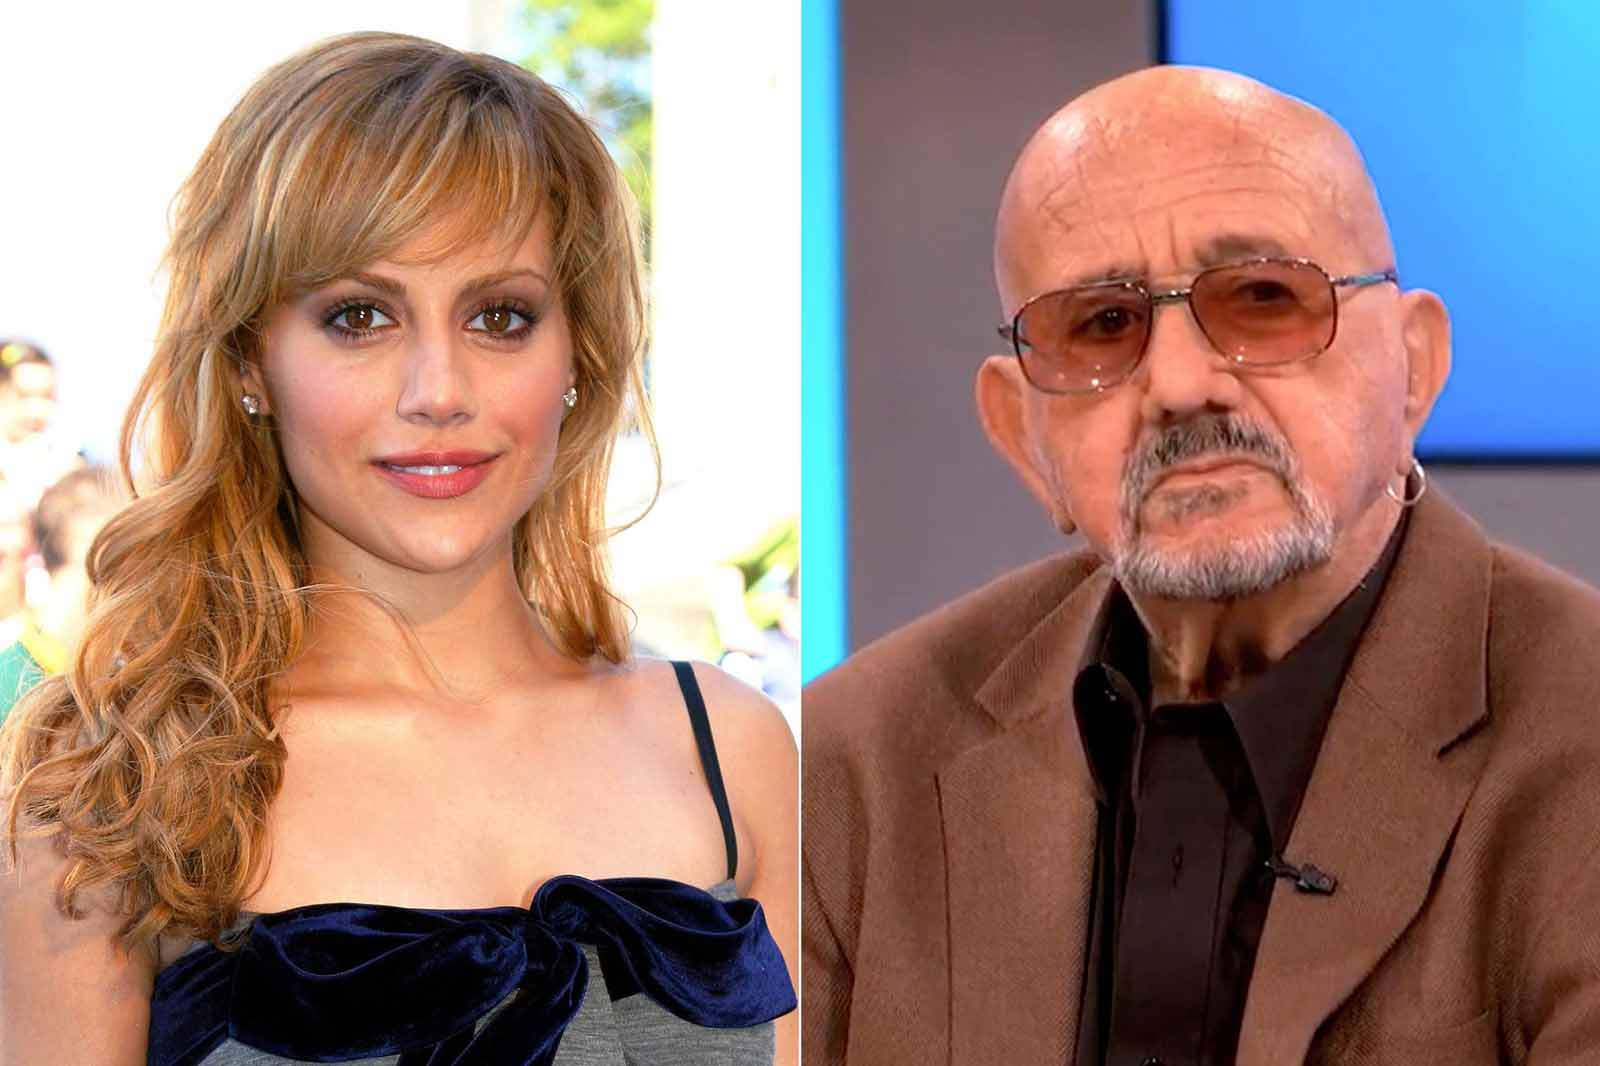 It seemed like an open and shut case when Brittany Murphy tragically passed away in 2009. But her half-brother still believes Murphy was murdered.